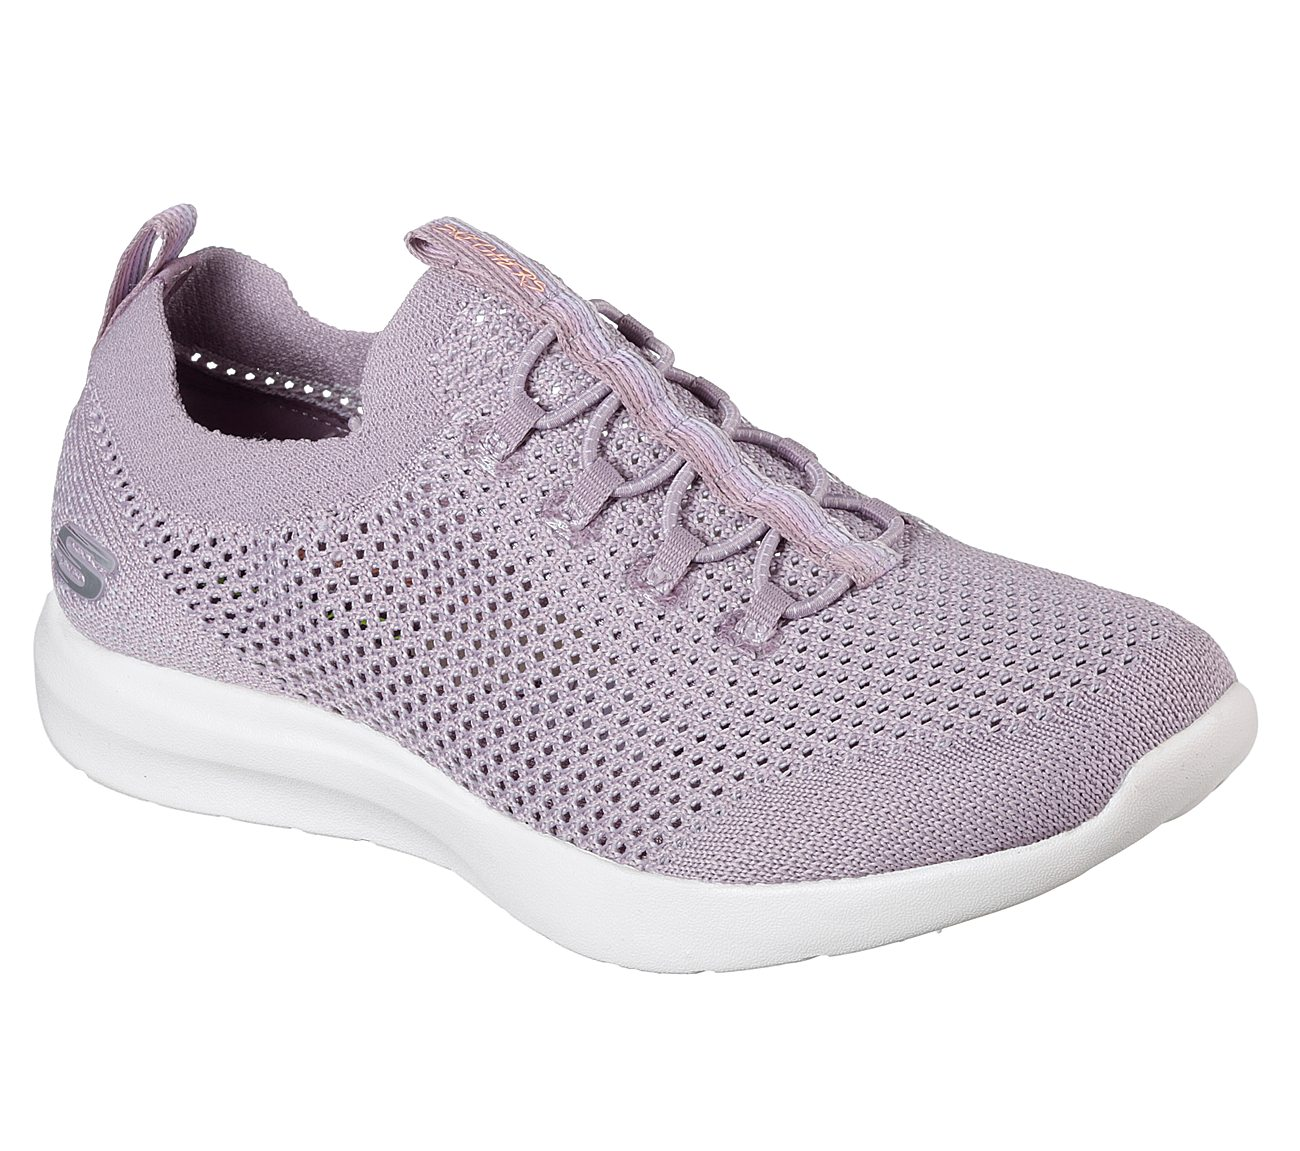 buy cheap wholesale price Women's Comfort Air - Just a Lil Knit buy cheap get authentic collections cheap online 7K2IT39